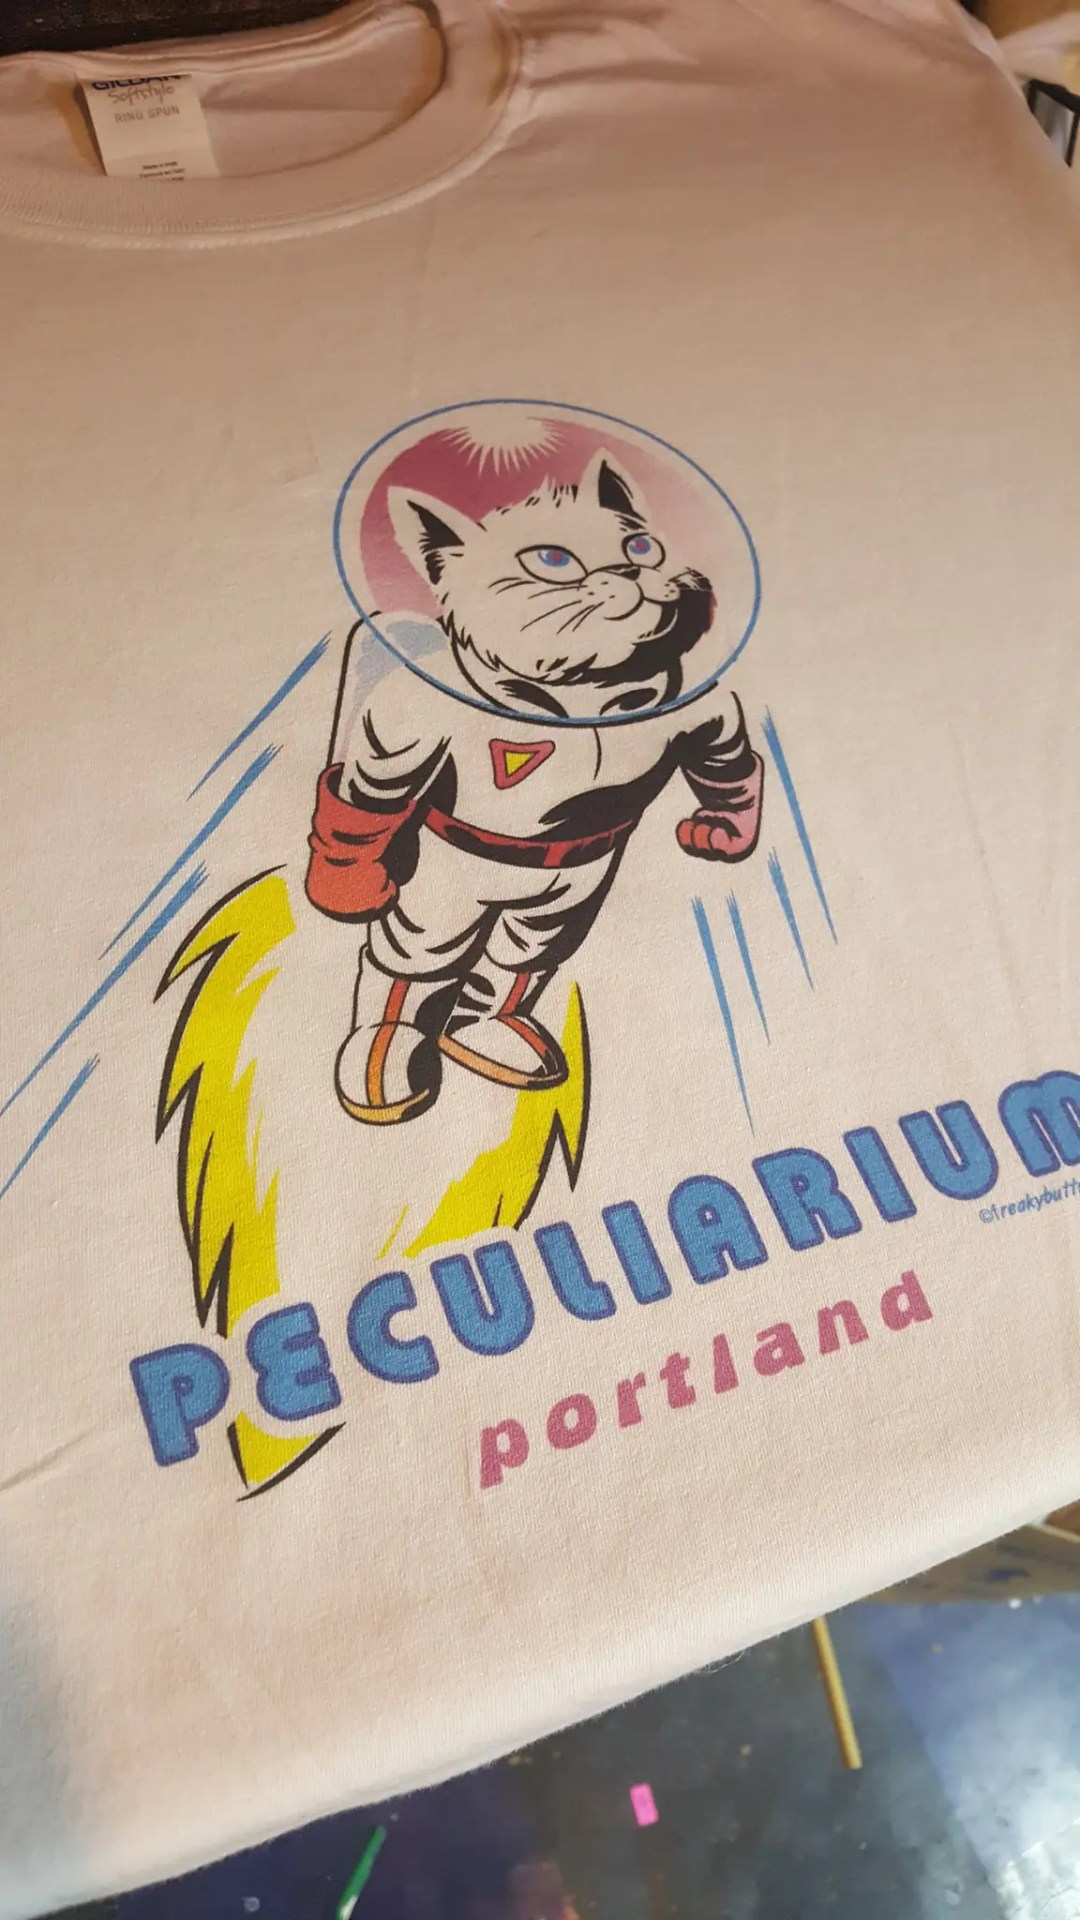 Visit the Freakybutture Peculiarium and Museum